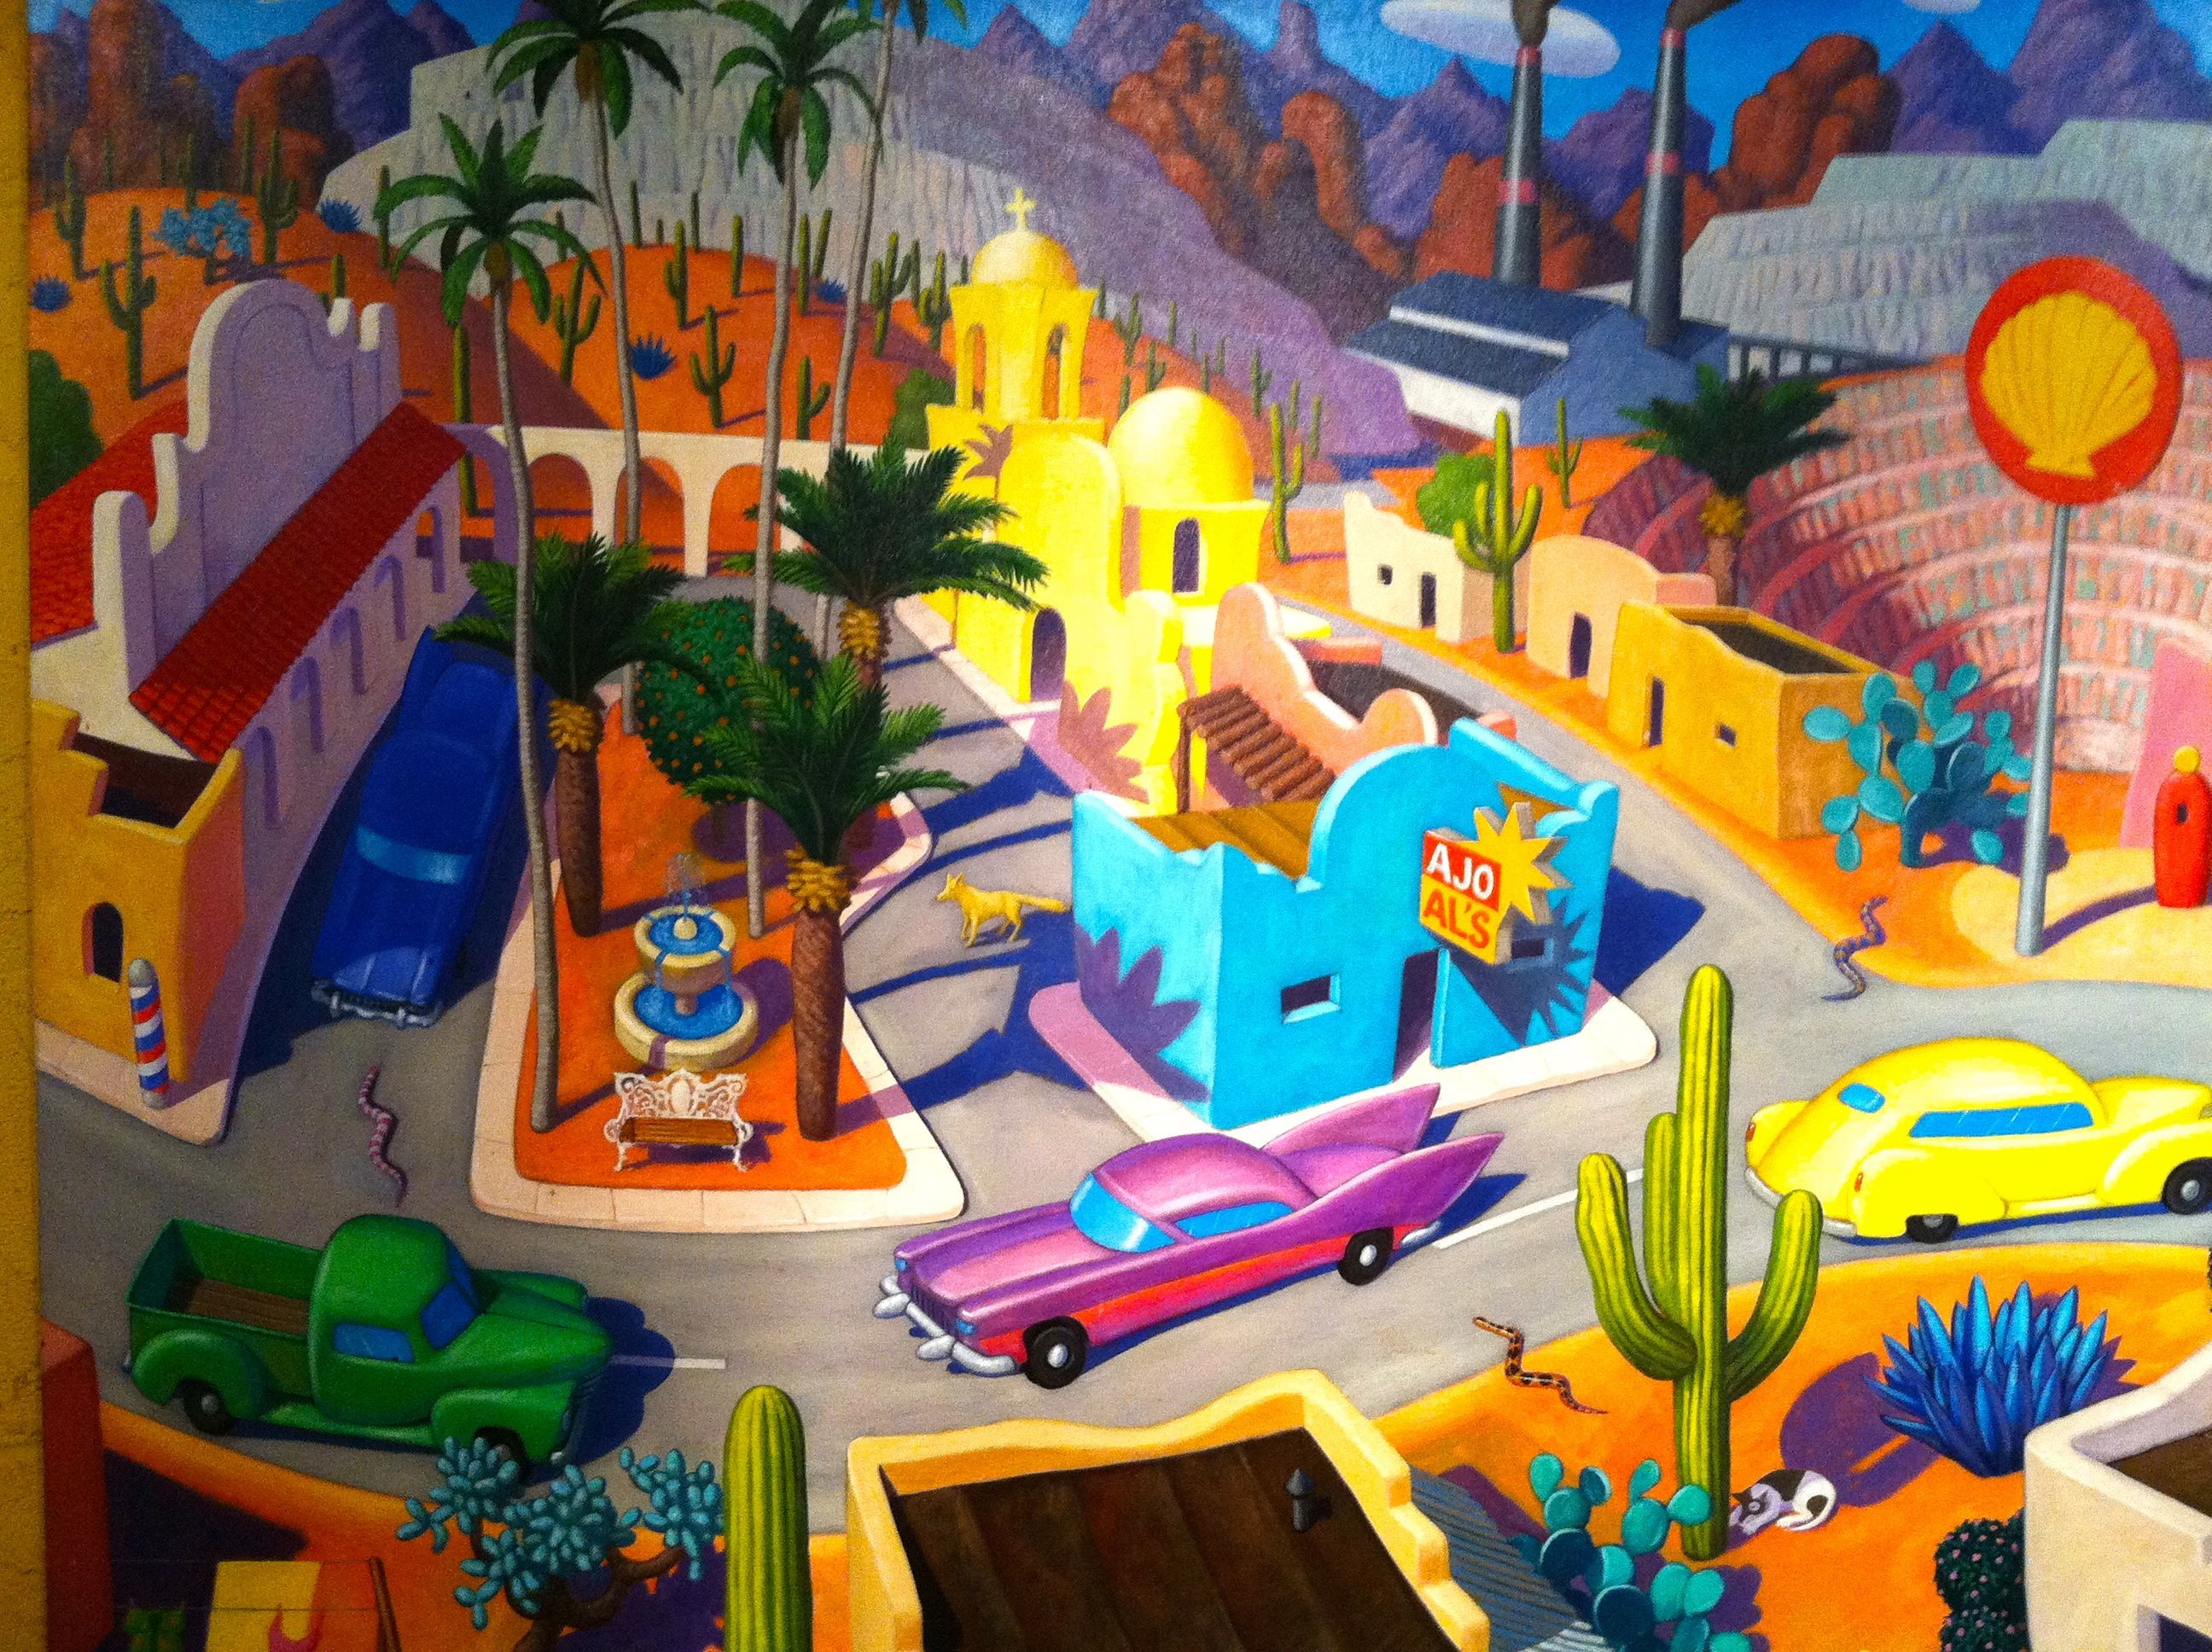 AJO ALS Mexican Cafe Glendale AZ Mexican art, Painting